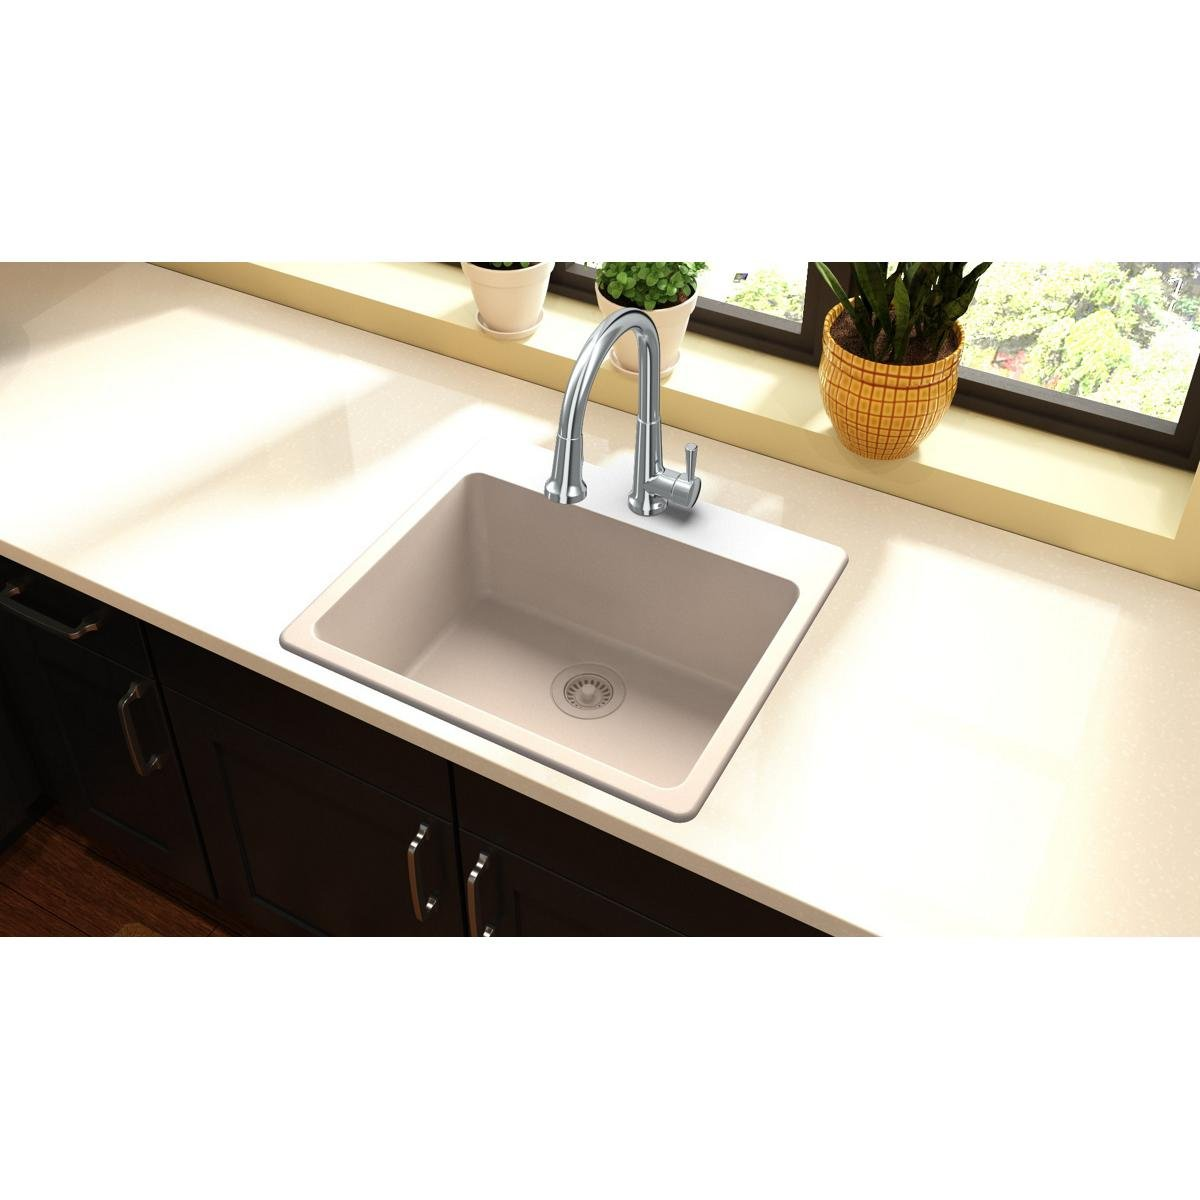 Astonishing Elkay Sinks Reviews 2019 Uncle Pauls List Of Sinks That Home Interior And Landscaping Eliaenasavecom